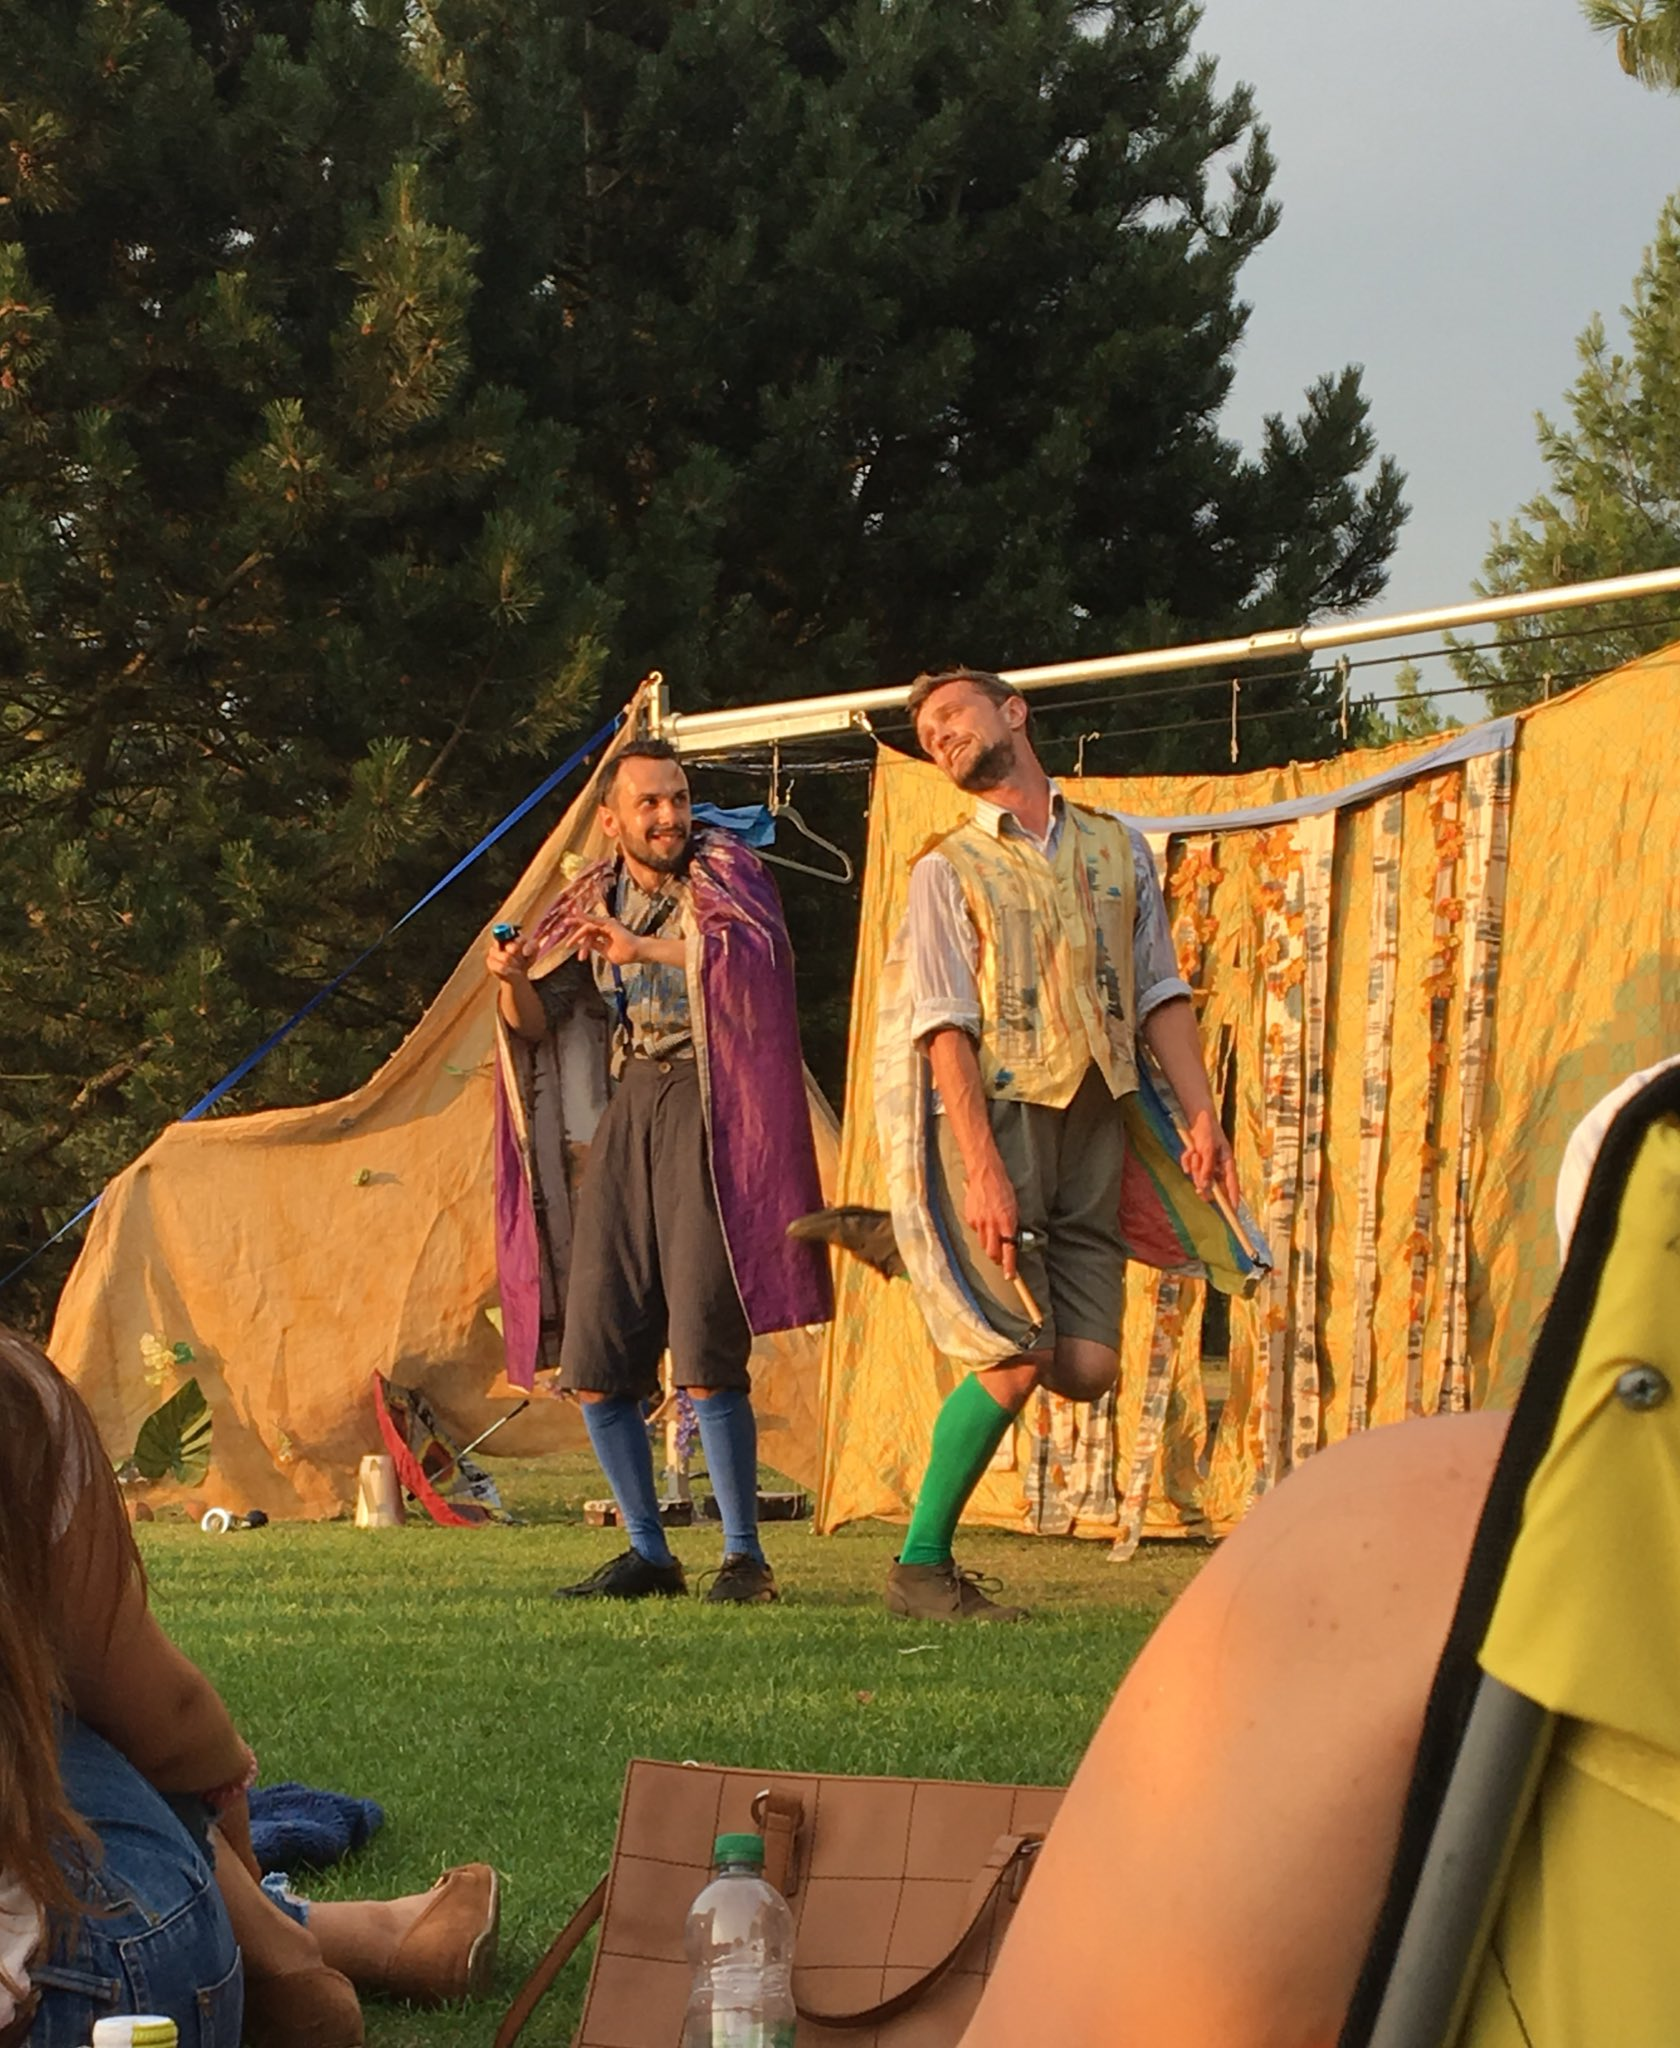 saw midsummer nights dream today and it was wonderful ~ i even got to play lysander for the mechanicals play scene!! thank you @HandleBards https://t.co/tXprGxGP8O